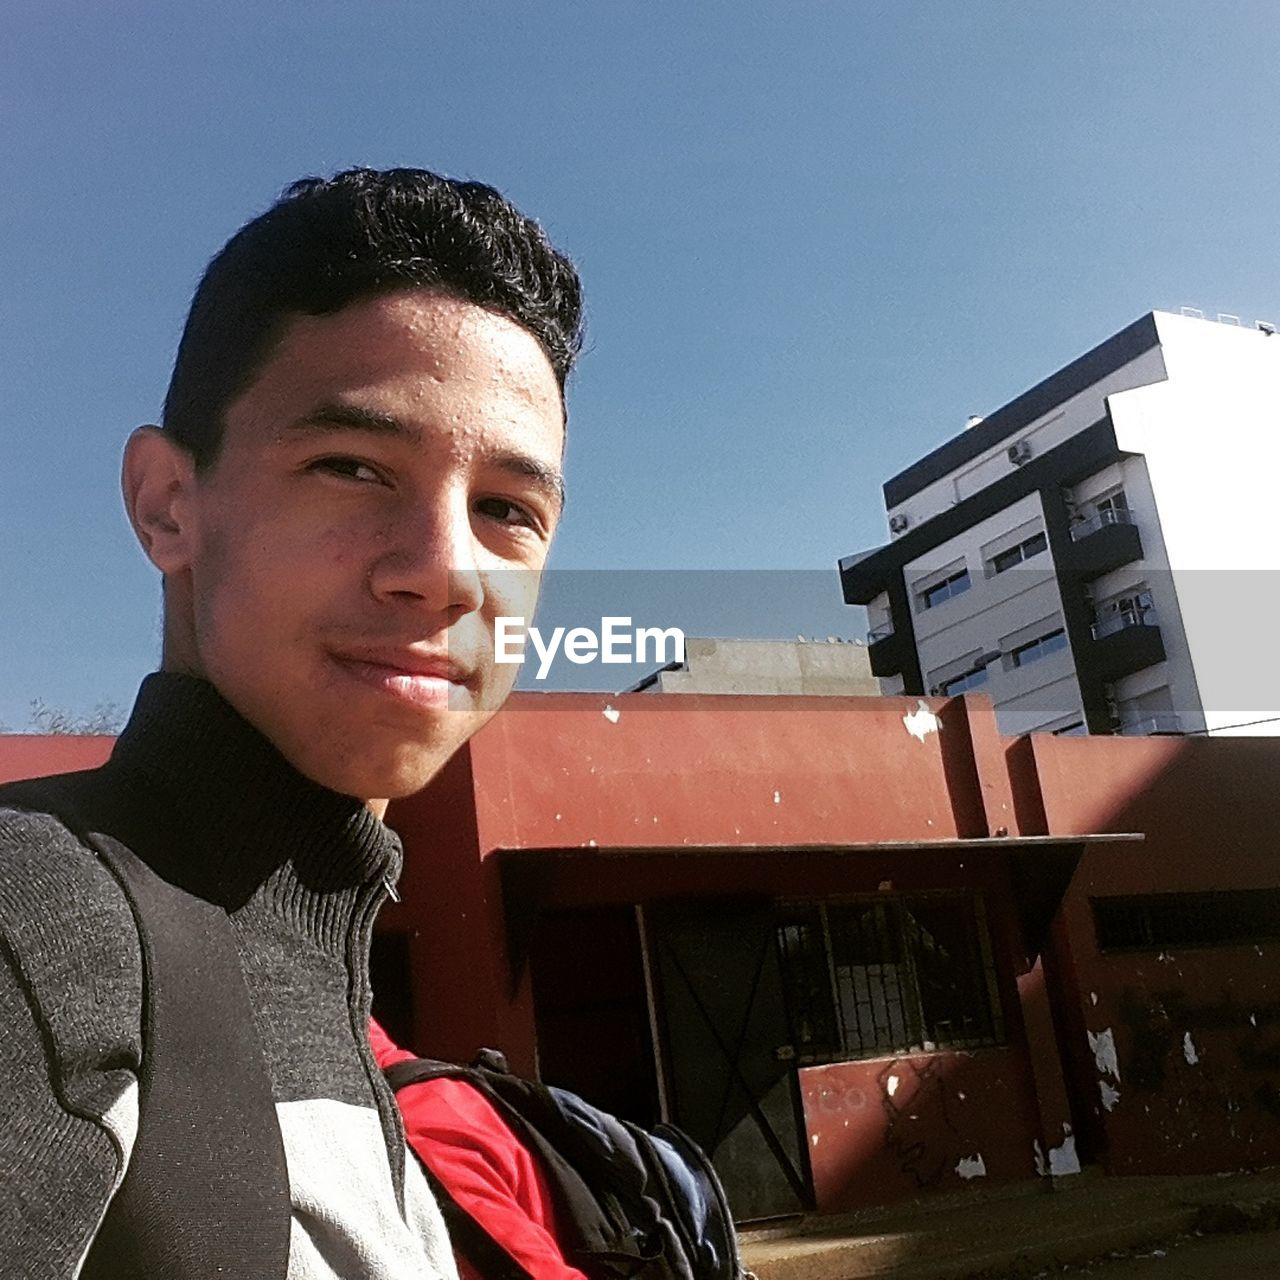 architecture, building exterior, built structure, real people, smiling, one person, outdoors, young adult, portrait, lifestyles, low angle view, looking at camera, sky, day, happiness, boys, clear sky